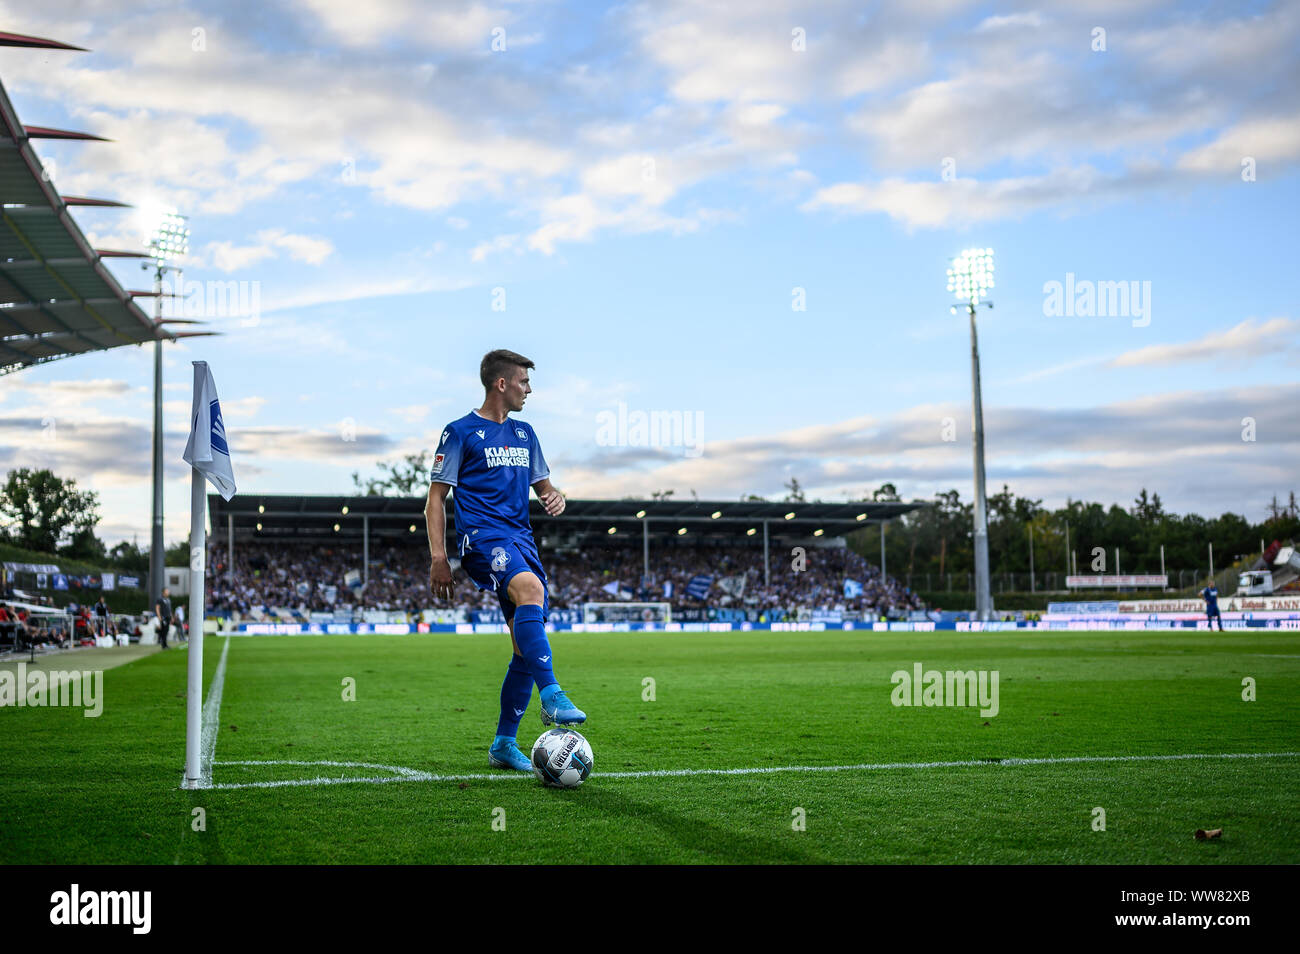 Marvin Wanitzek Ksc At The Corner Feature Ornamental Image Background Wallpaper Symbol Icon Image Ges Soccer 2 Bundesliga Karlsruher Sc Sv Sandhausen 13 09 2019 Football Soccer 2 League Karlsruher